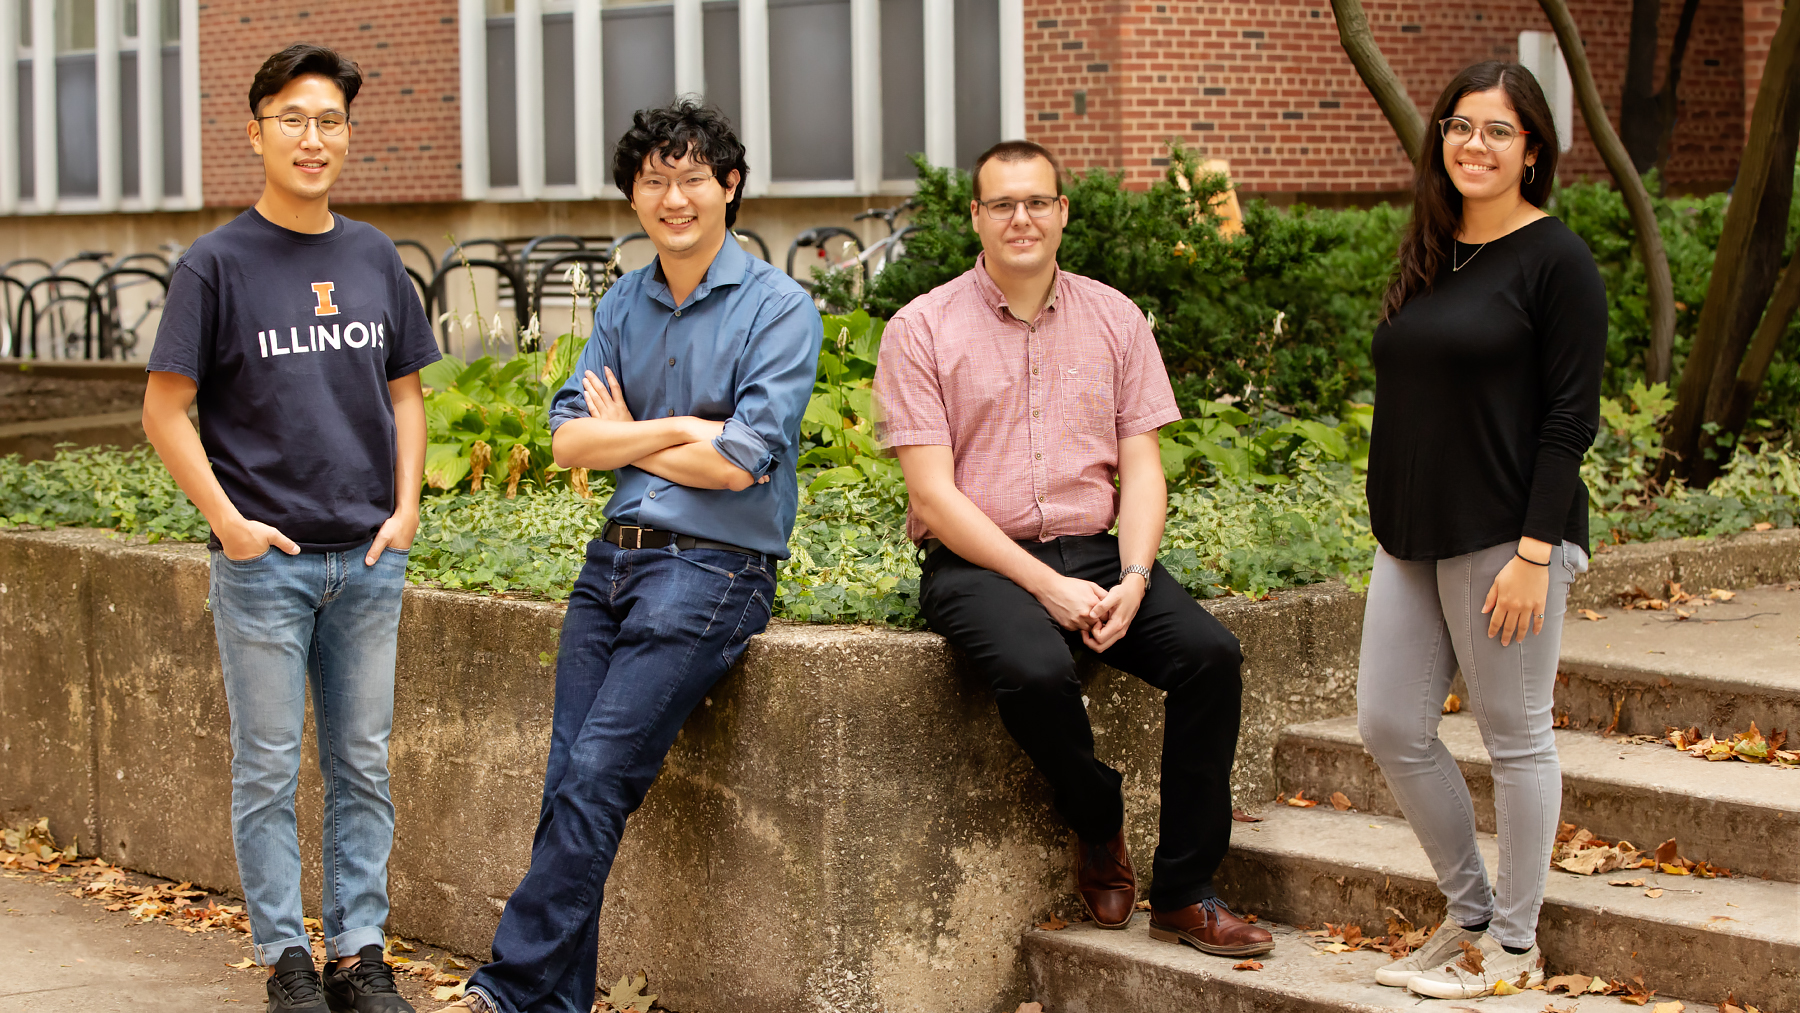 Illinois engineers Kwiyong Kim, left, Xiao Su, Johannes Elbert and Paola Baldaguez Medina are part of a team that developed a new polymer electrode device that can capture and destroy PFAS contaminants present in water.  Photo by L. Brian Stauffer